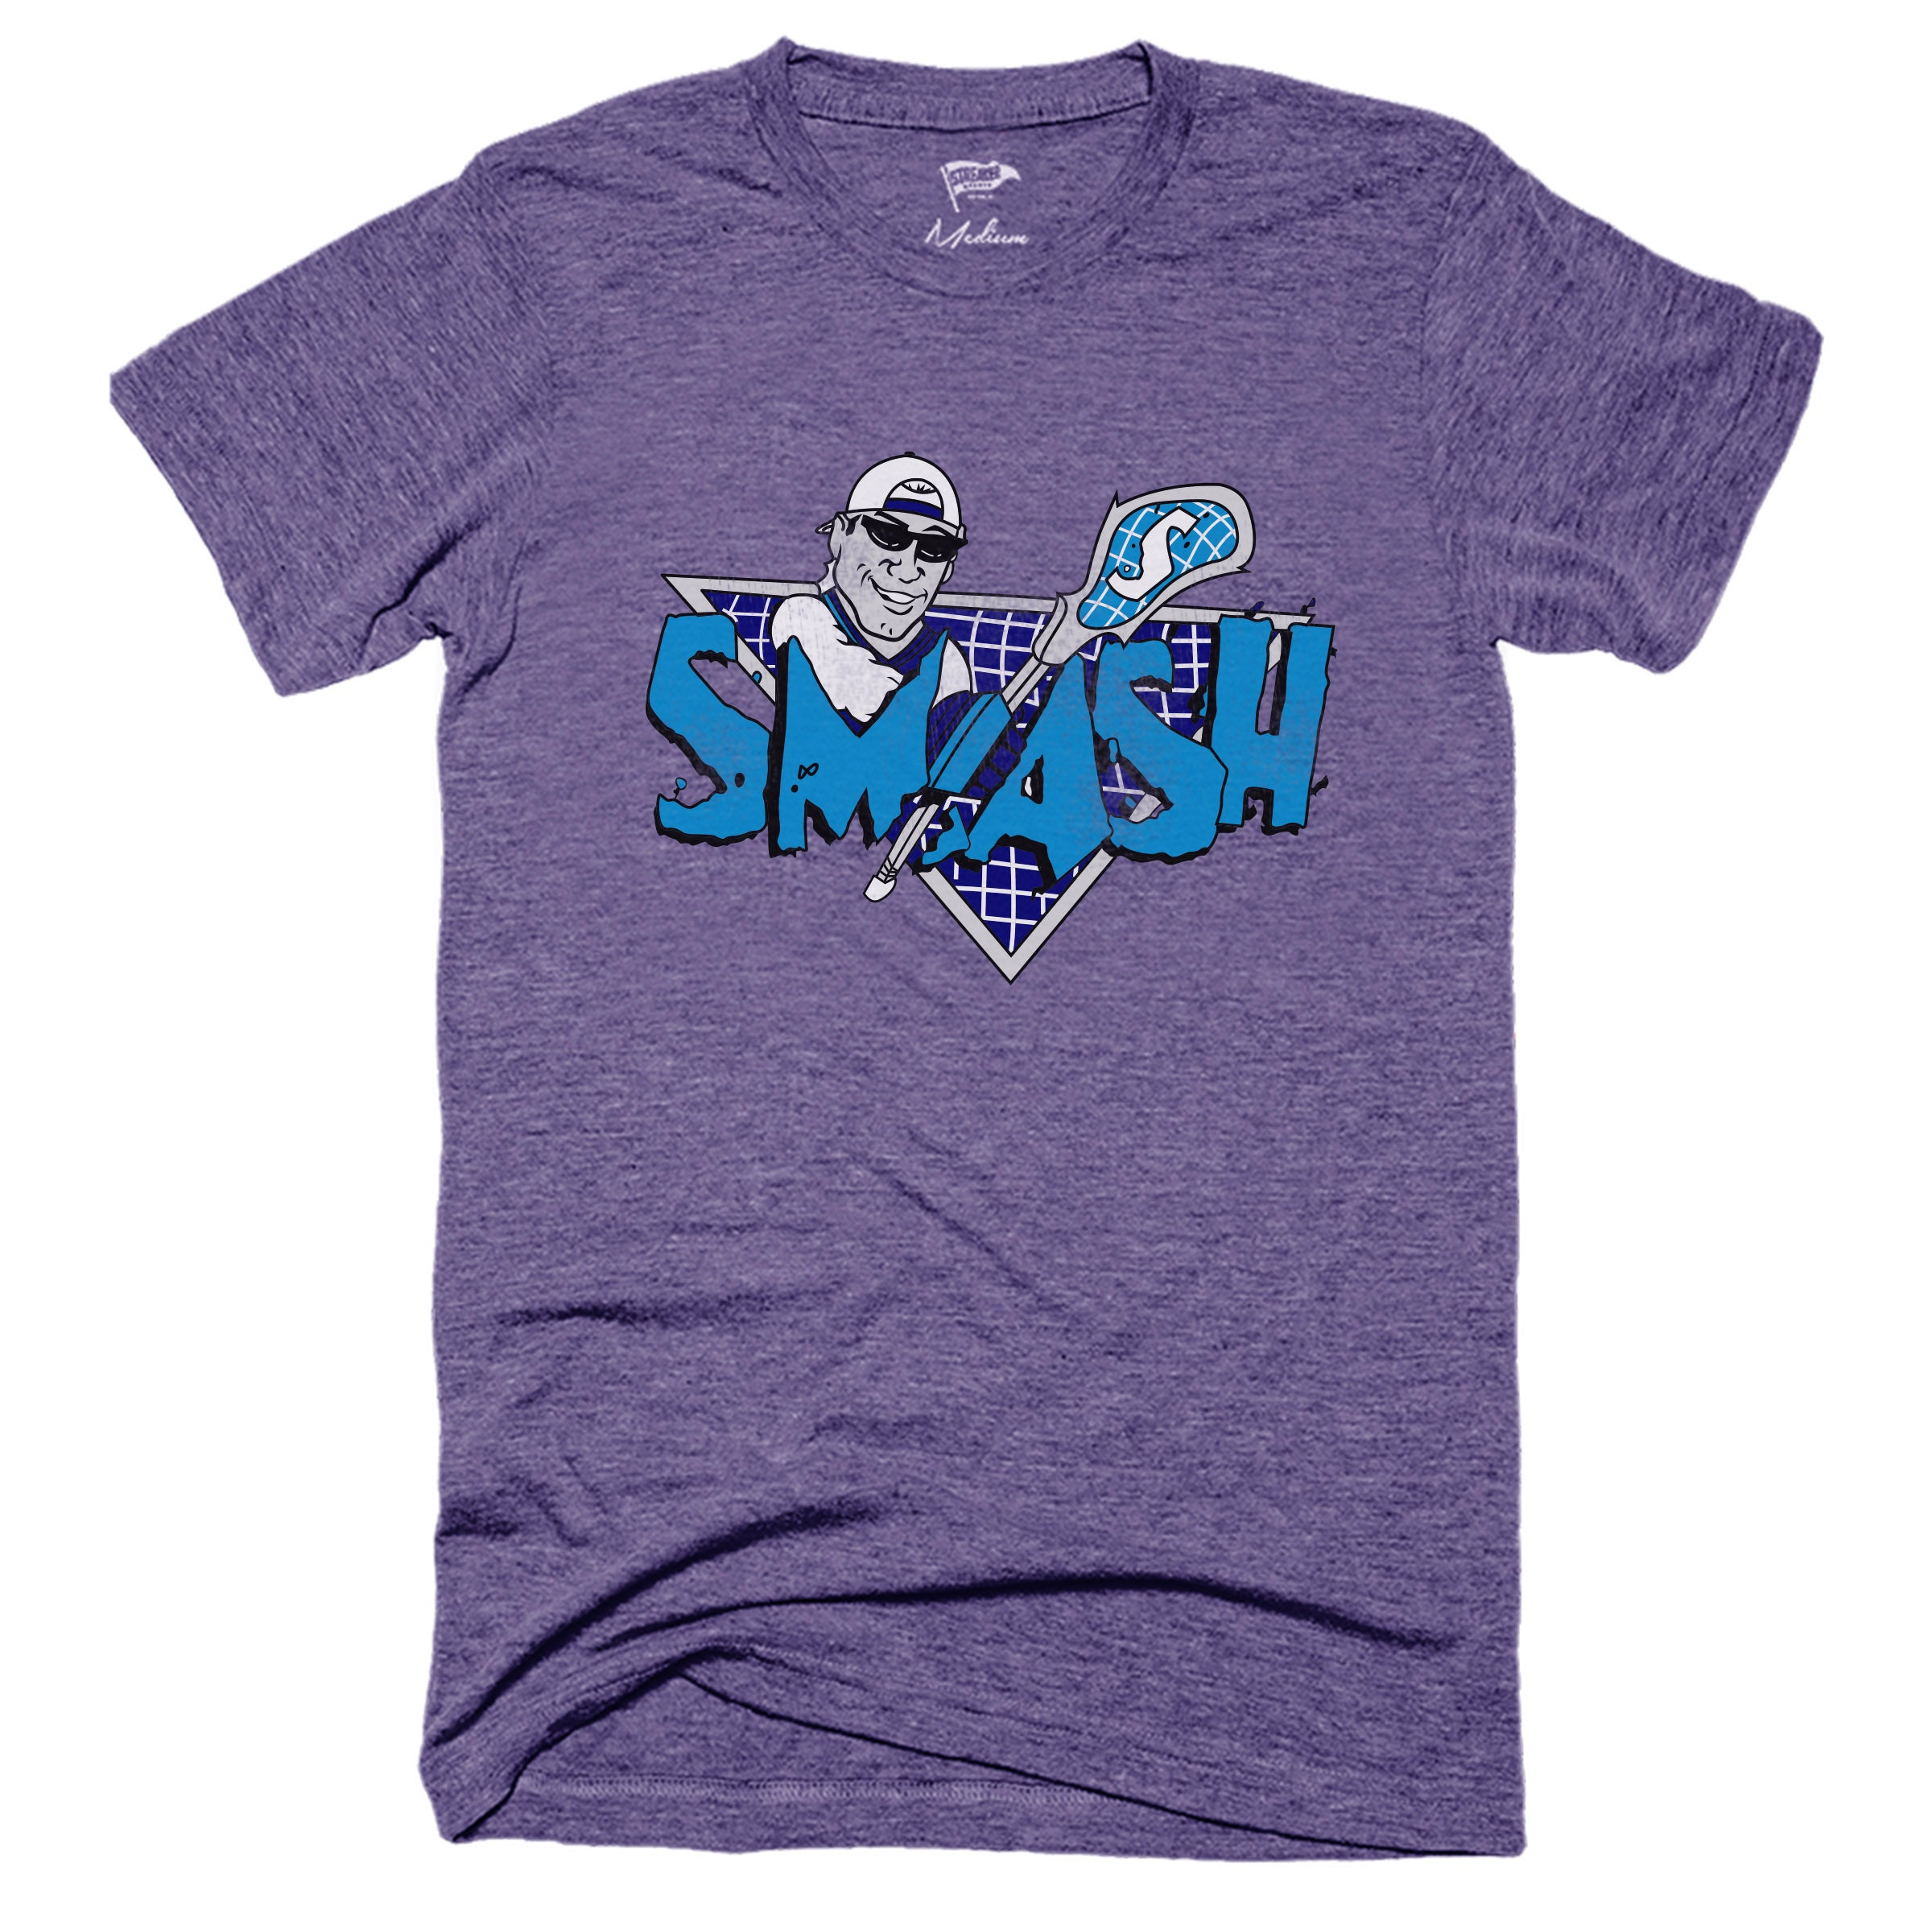 1998 Syracuse Smash Tee